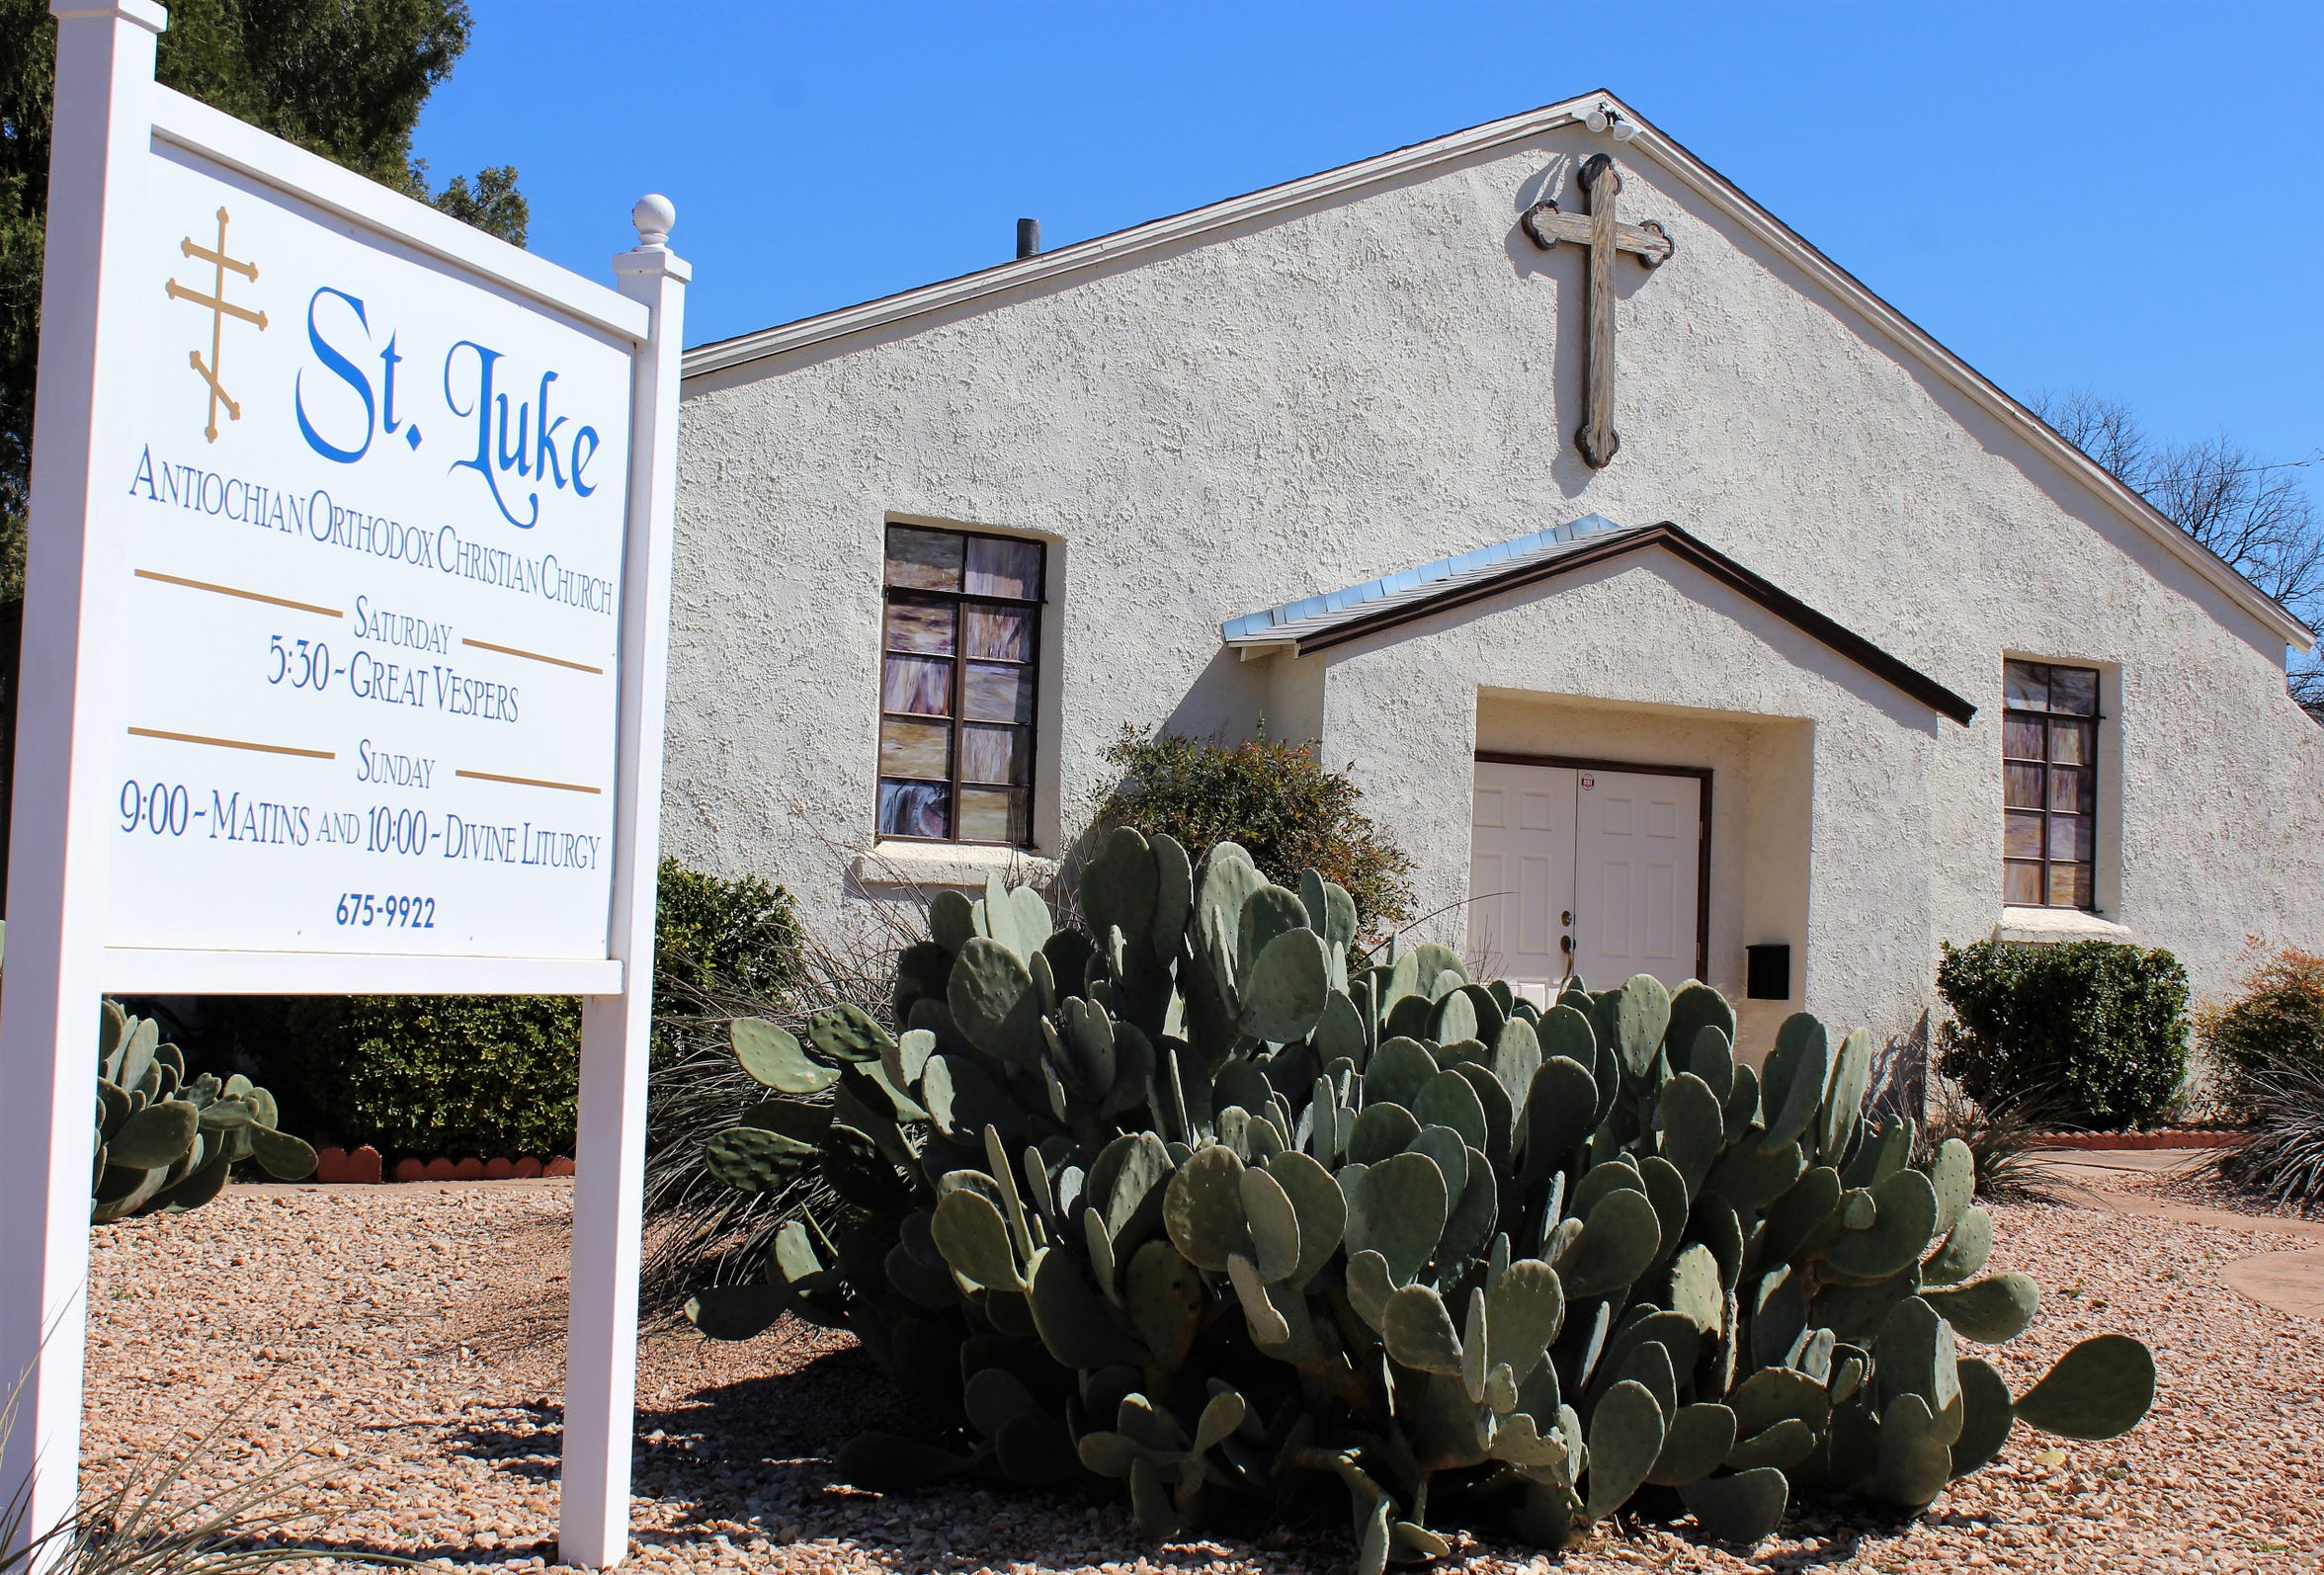 St. Luke Orthodox Church has an exterior look appropriate for West Texas.